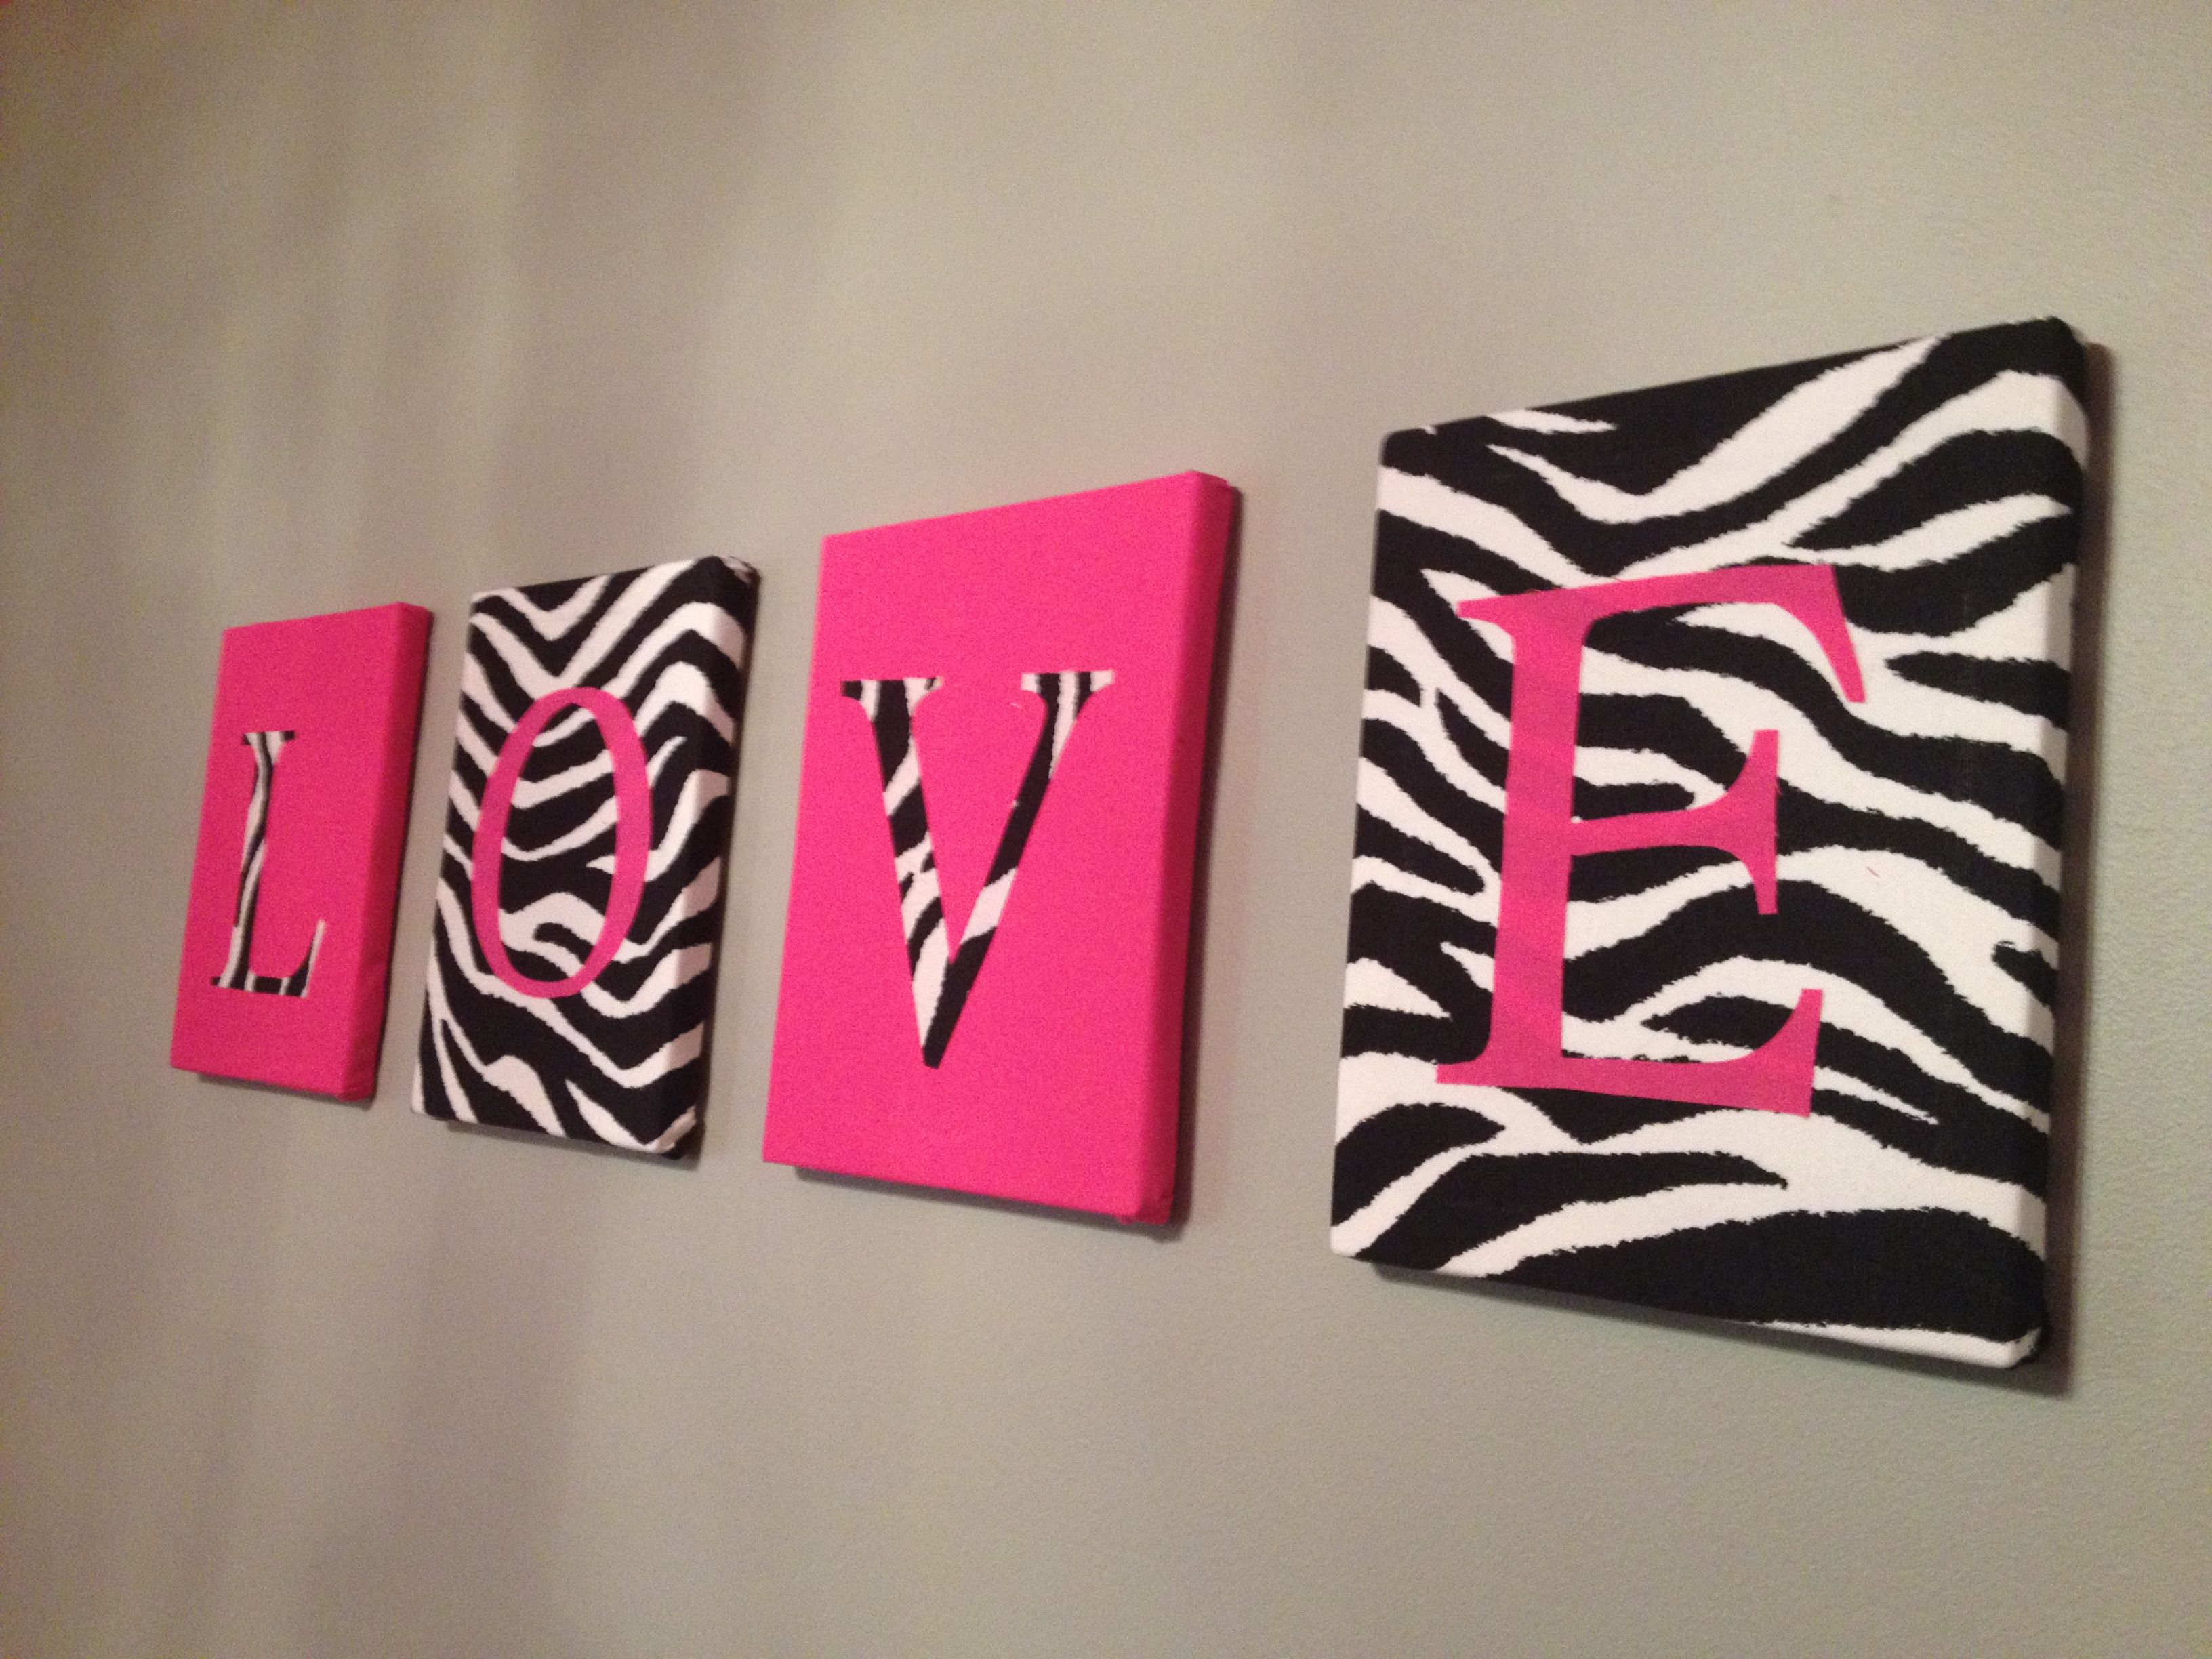 Bedroom Zebra Bedroom Decor With A Zebra Style Wall Hanging That Reads Love Zebra  Bedroom Decor For Your House